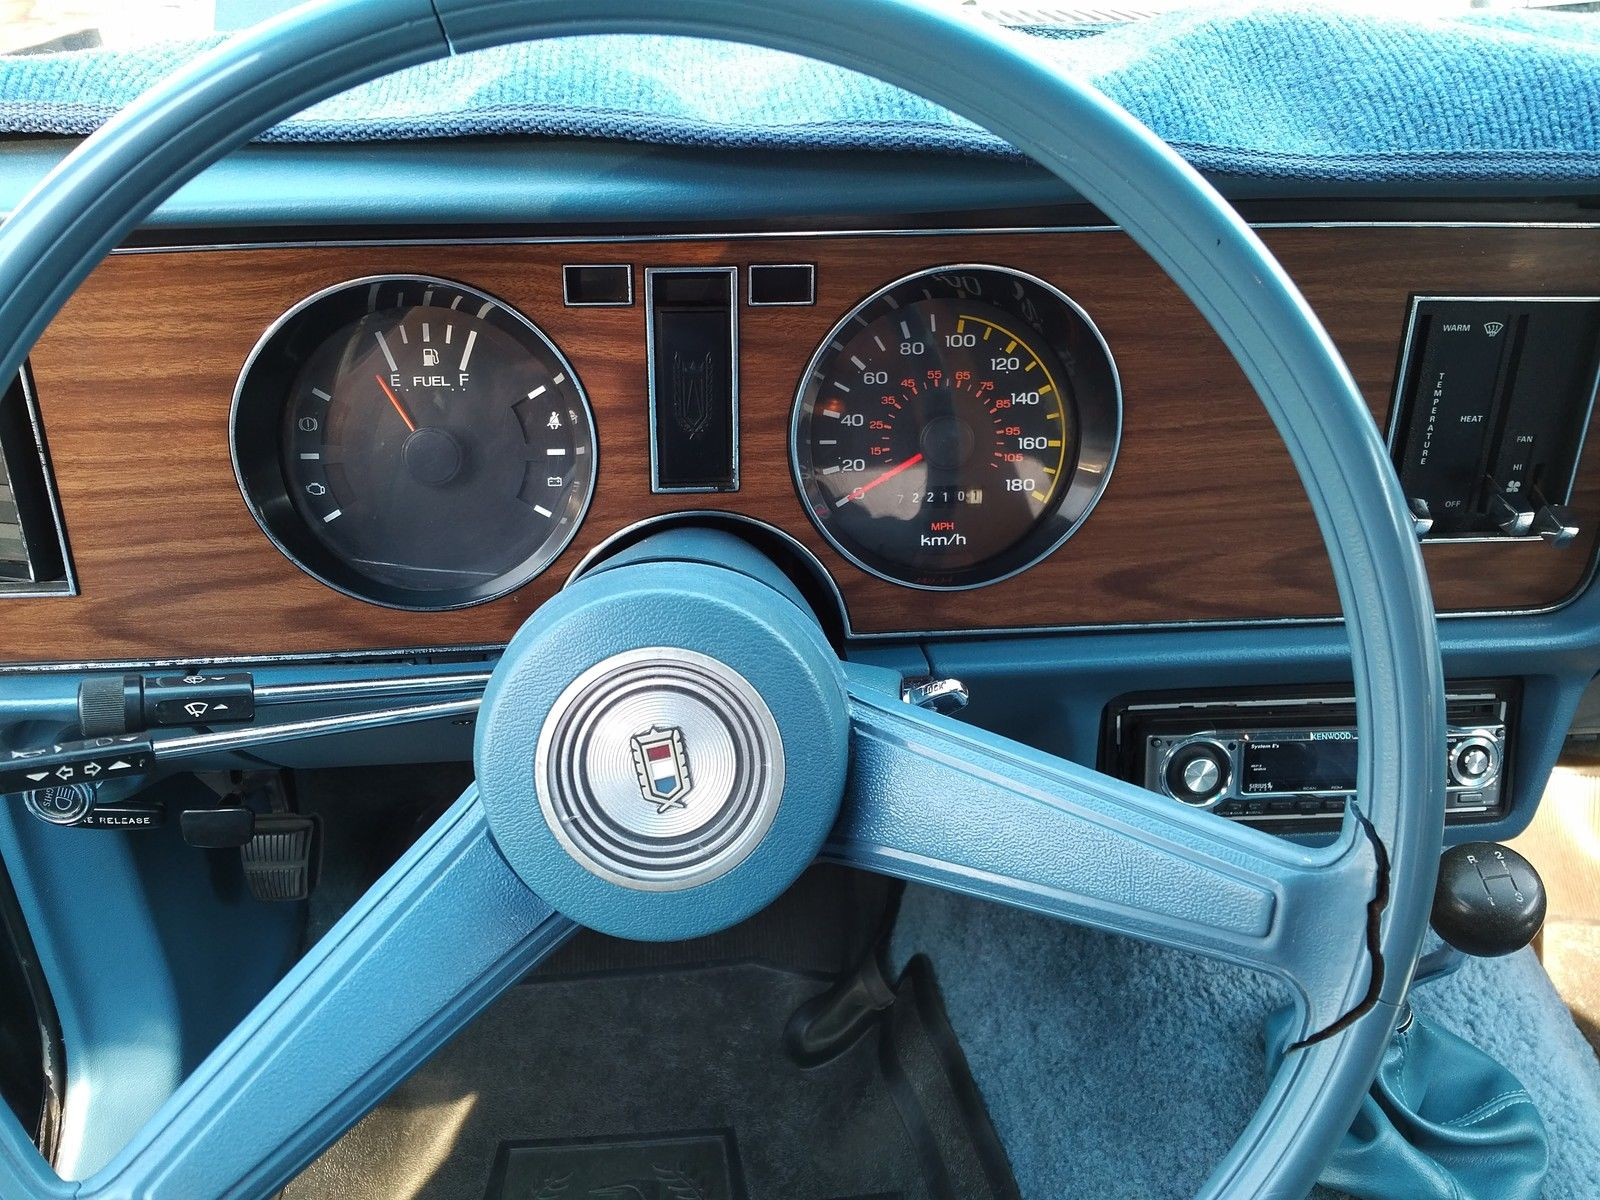 Heres that fancy blue two spoke steering wheel note that it has some cracks when viewed up close